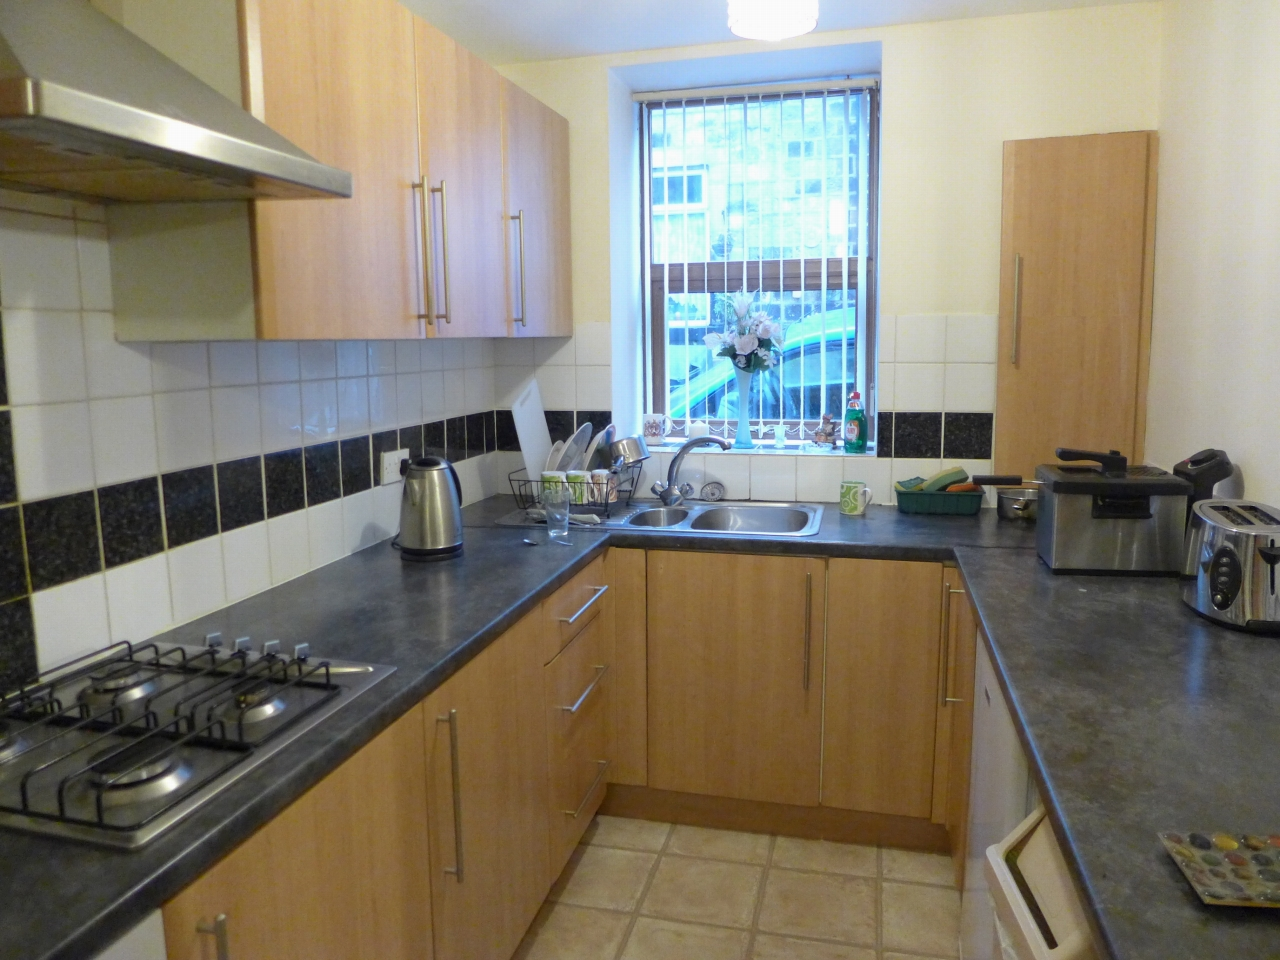 2 bedroom apartment flat/apartment For Sale in Calderdale - Photograph 4.